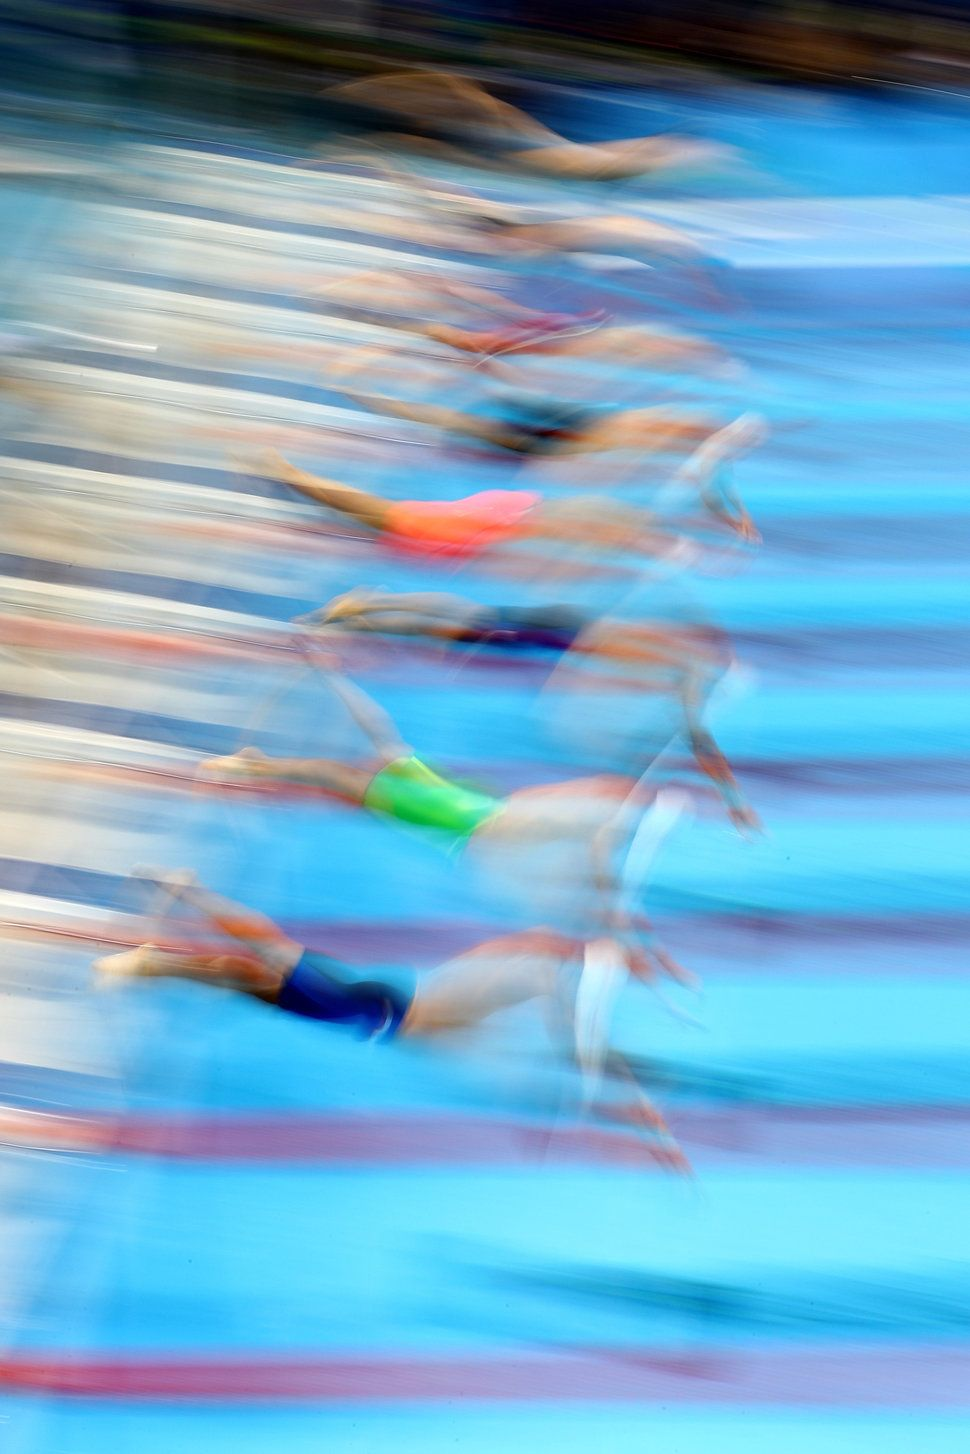 53 Of The Most Magnificent Photos From The Rio Olympics